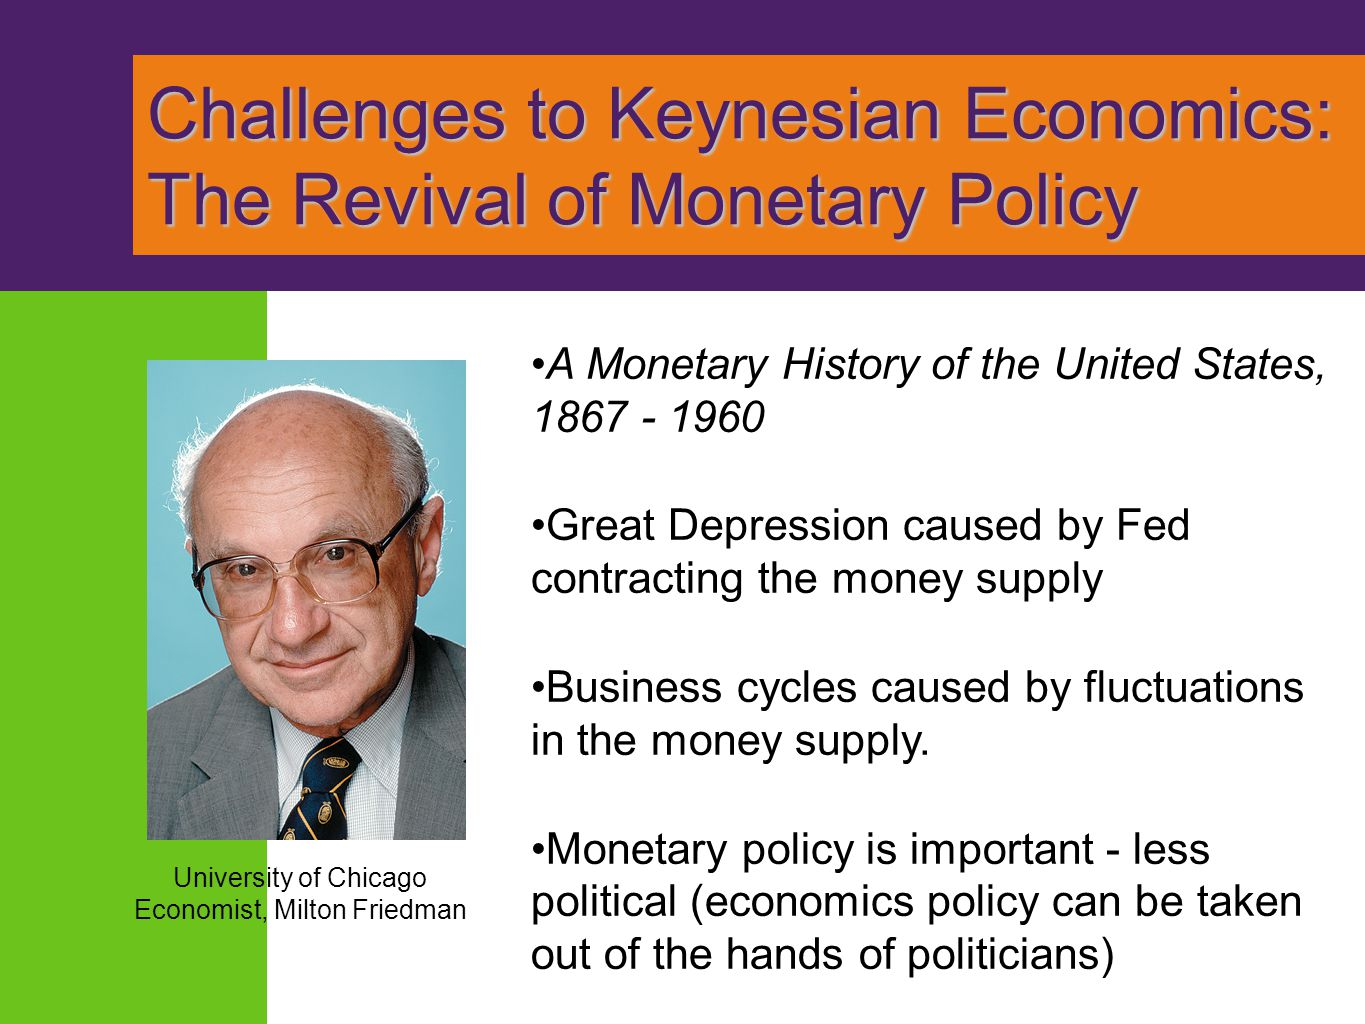 Challenges to Keynesian Economics: The Revival of Monetary Policy